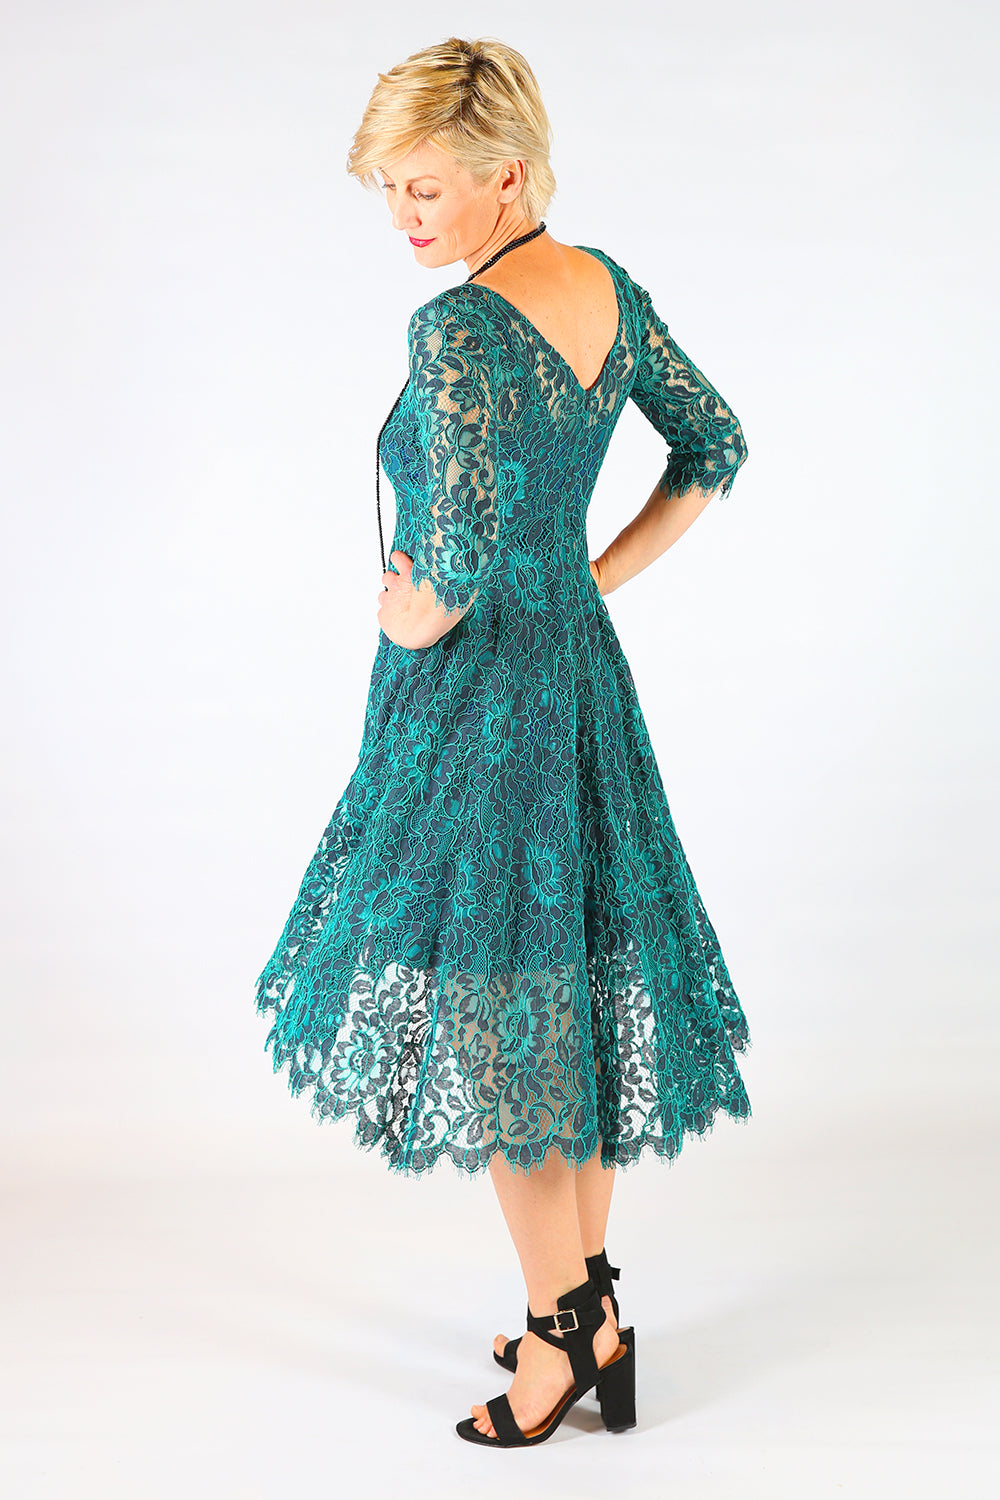 Summer Storm Lace Dress